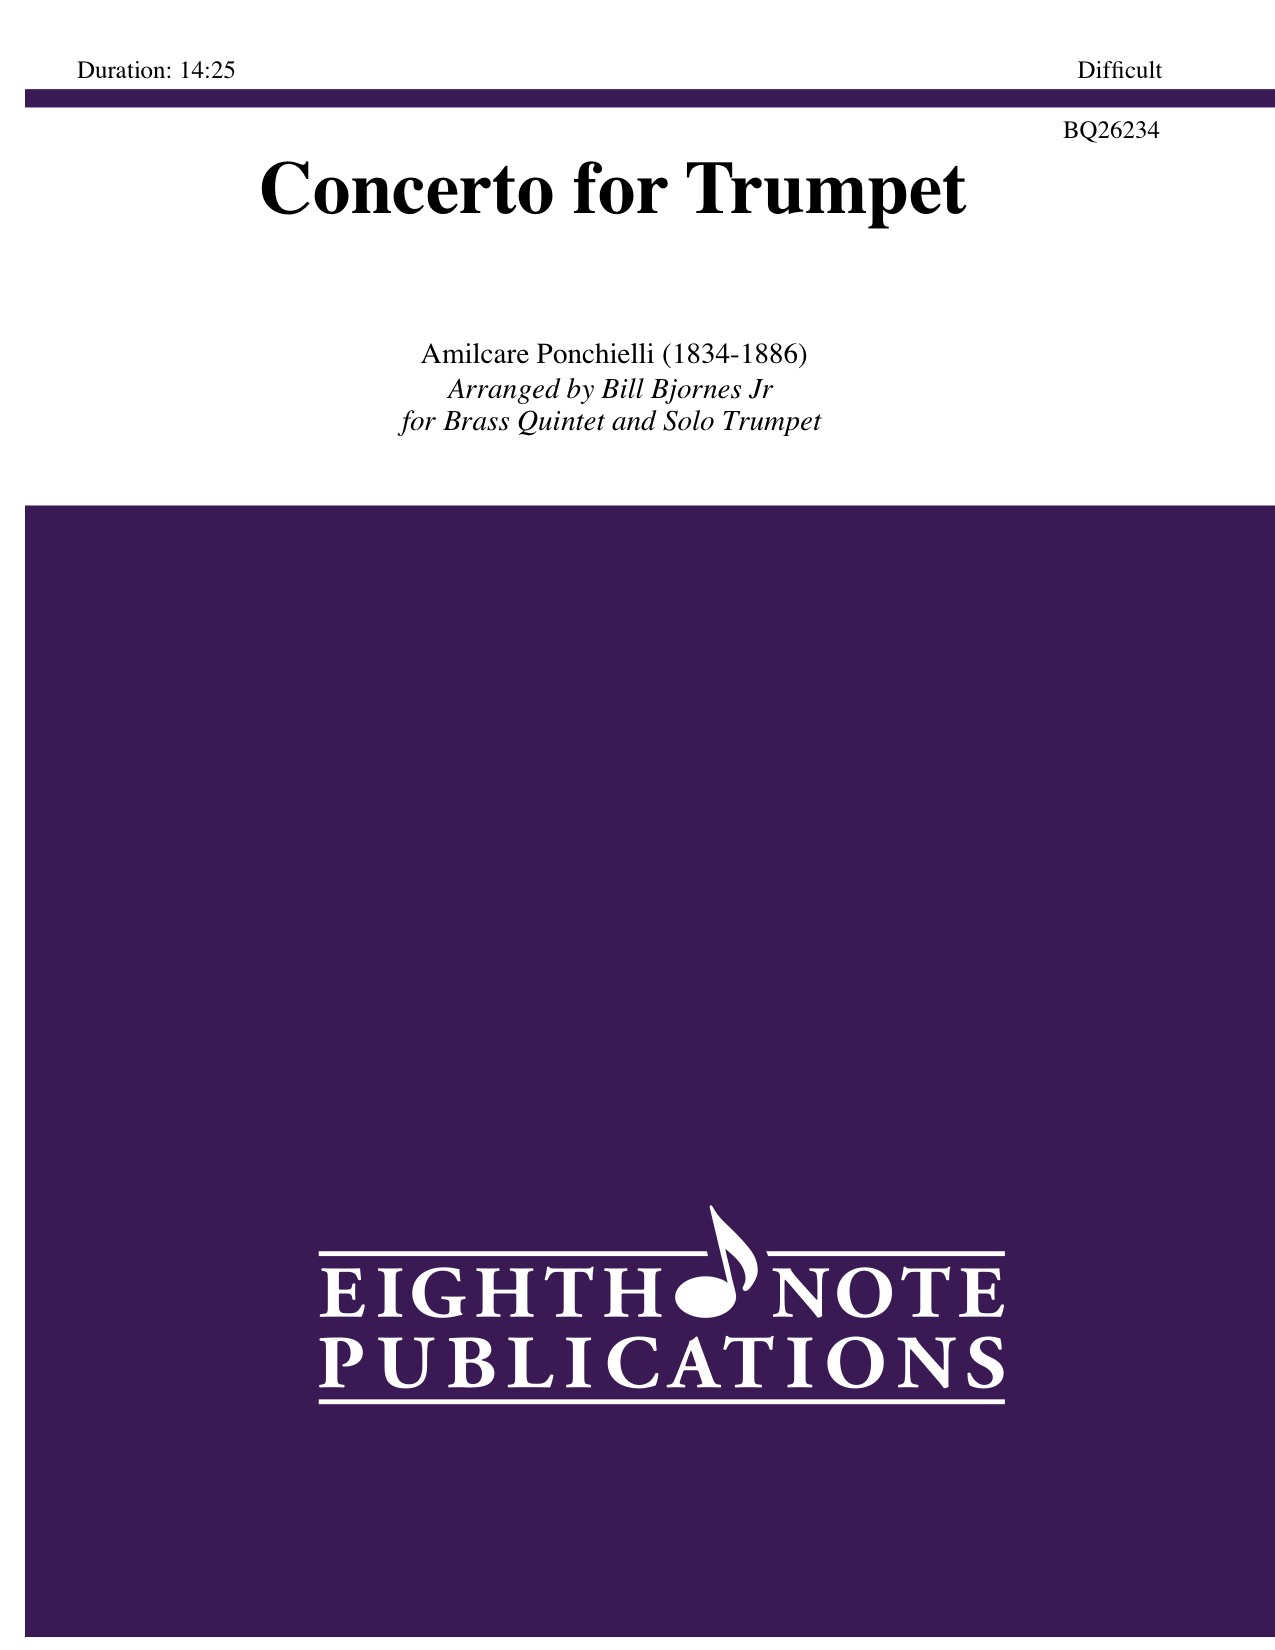 Concerto for Trumpet - Amilcare Ponchielli